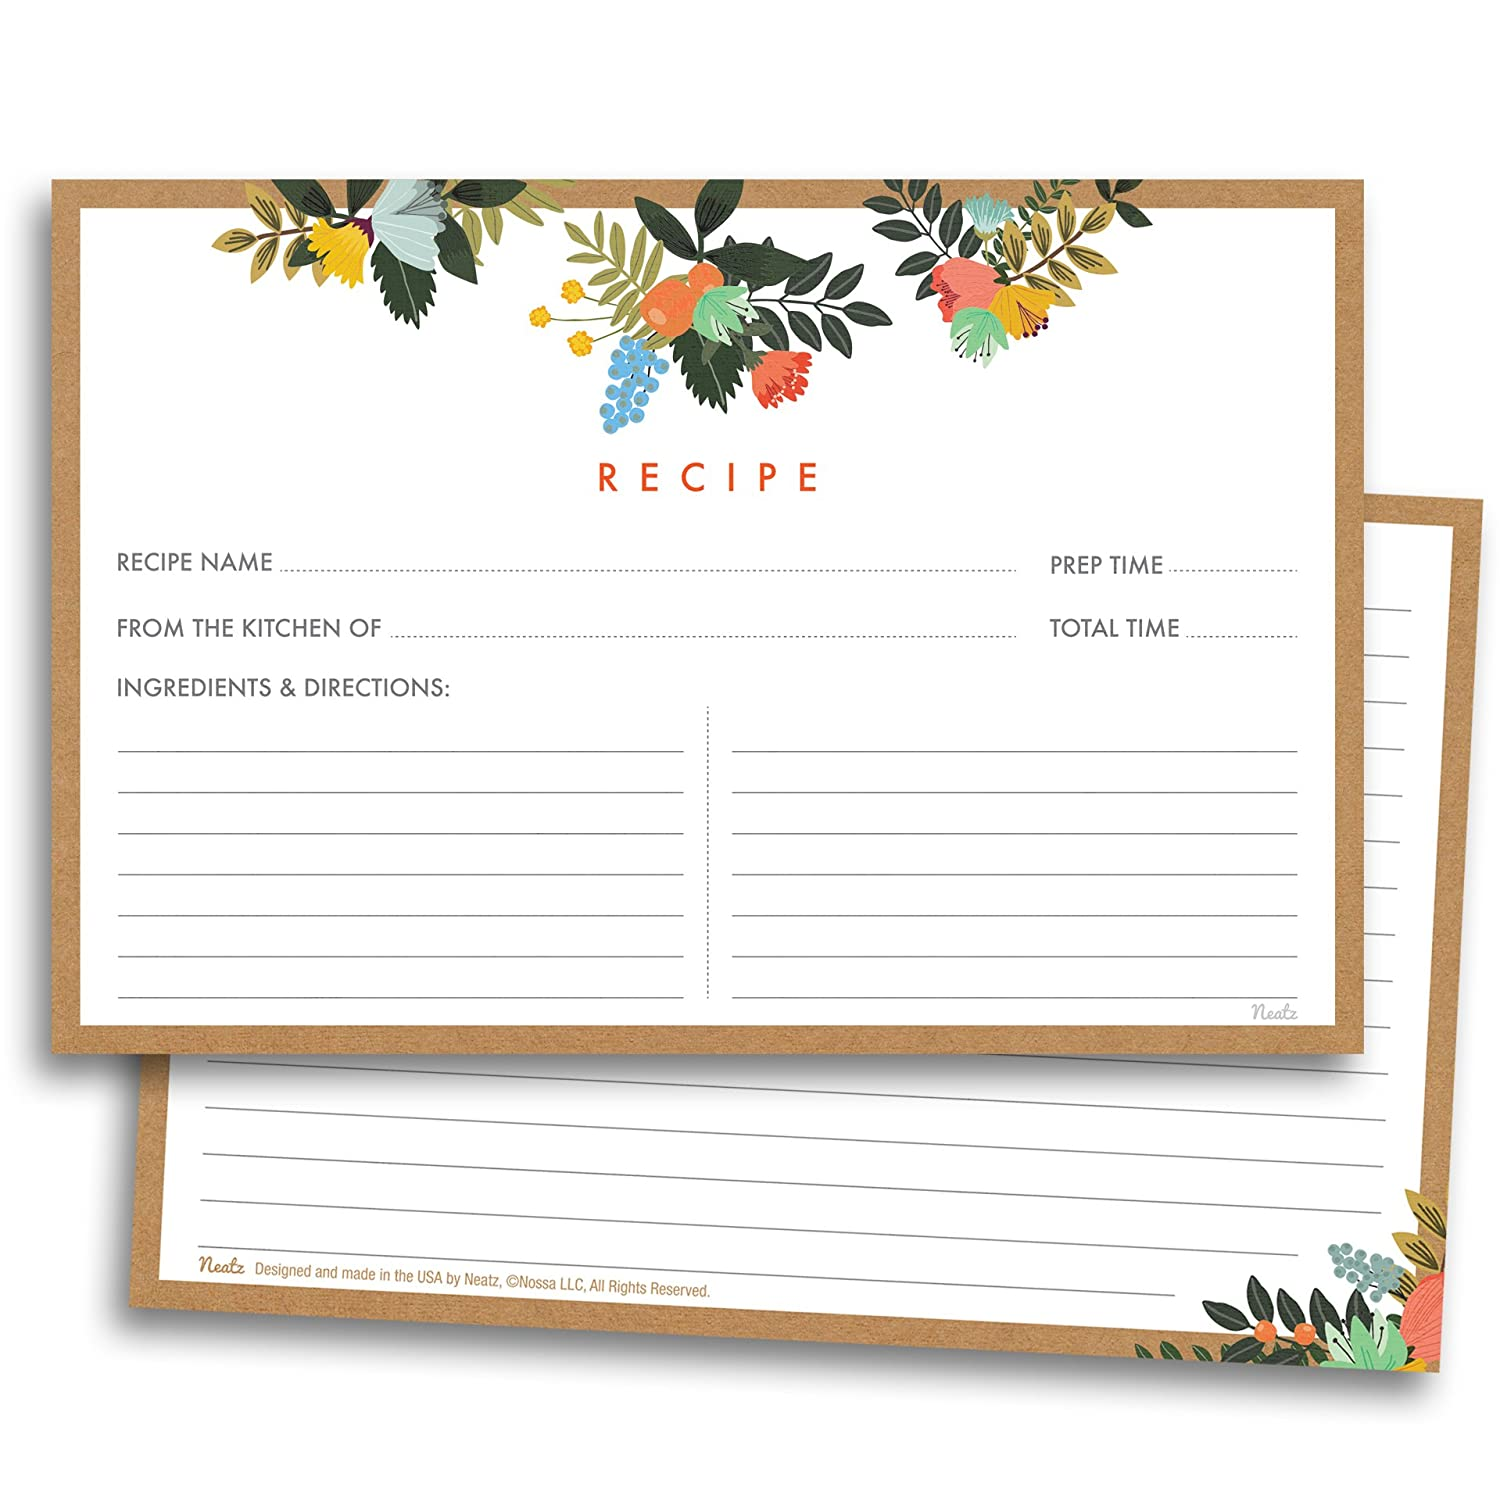 Floral Recipe Cards 50 Double Sided Cards 4x6 inches Thick Card Stock